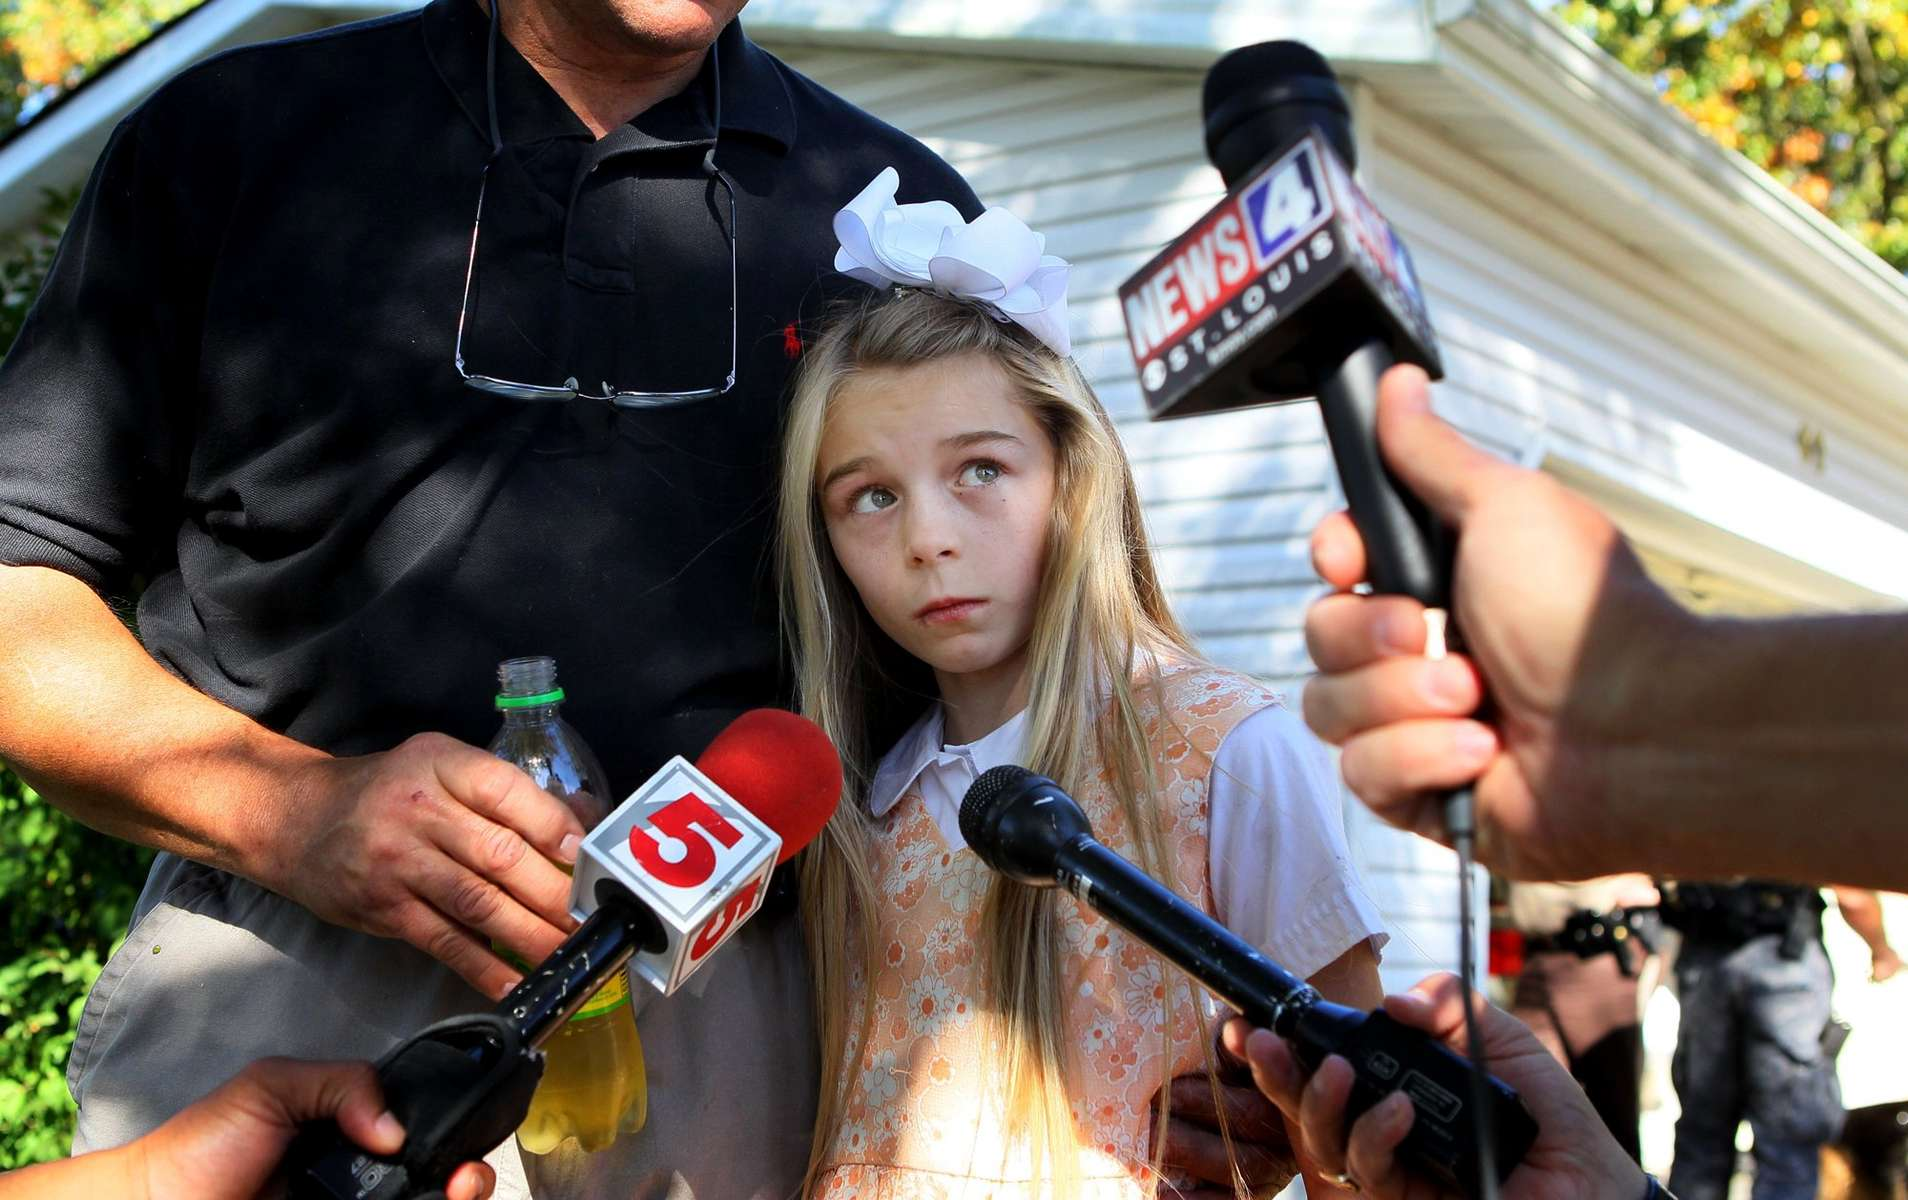 Friday October 8, 2010--Rachel Wilkerson, 10, talks to the media in the front yard of her home in Troy, Missouri after she showed up back home on her own.  Rachel had been missing for more than six hours and a search was underway for the child when she walked out of the woods next to her home.  The girl said she had taken a nap in the woods.David Carson     dcarson@post-dispatch.com